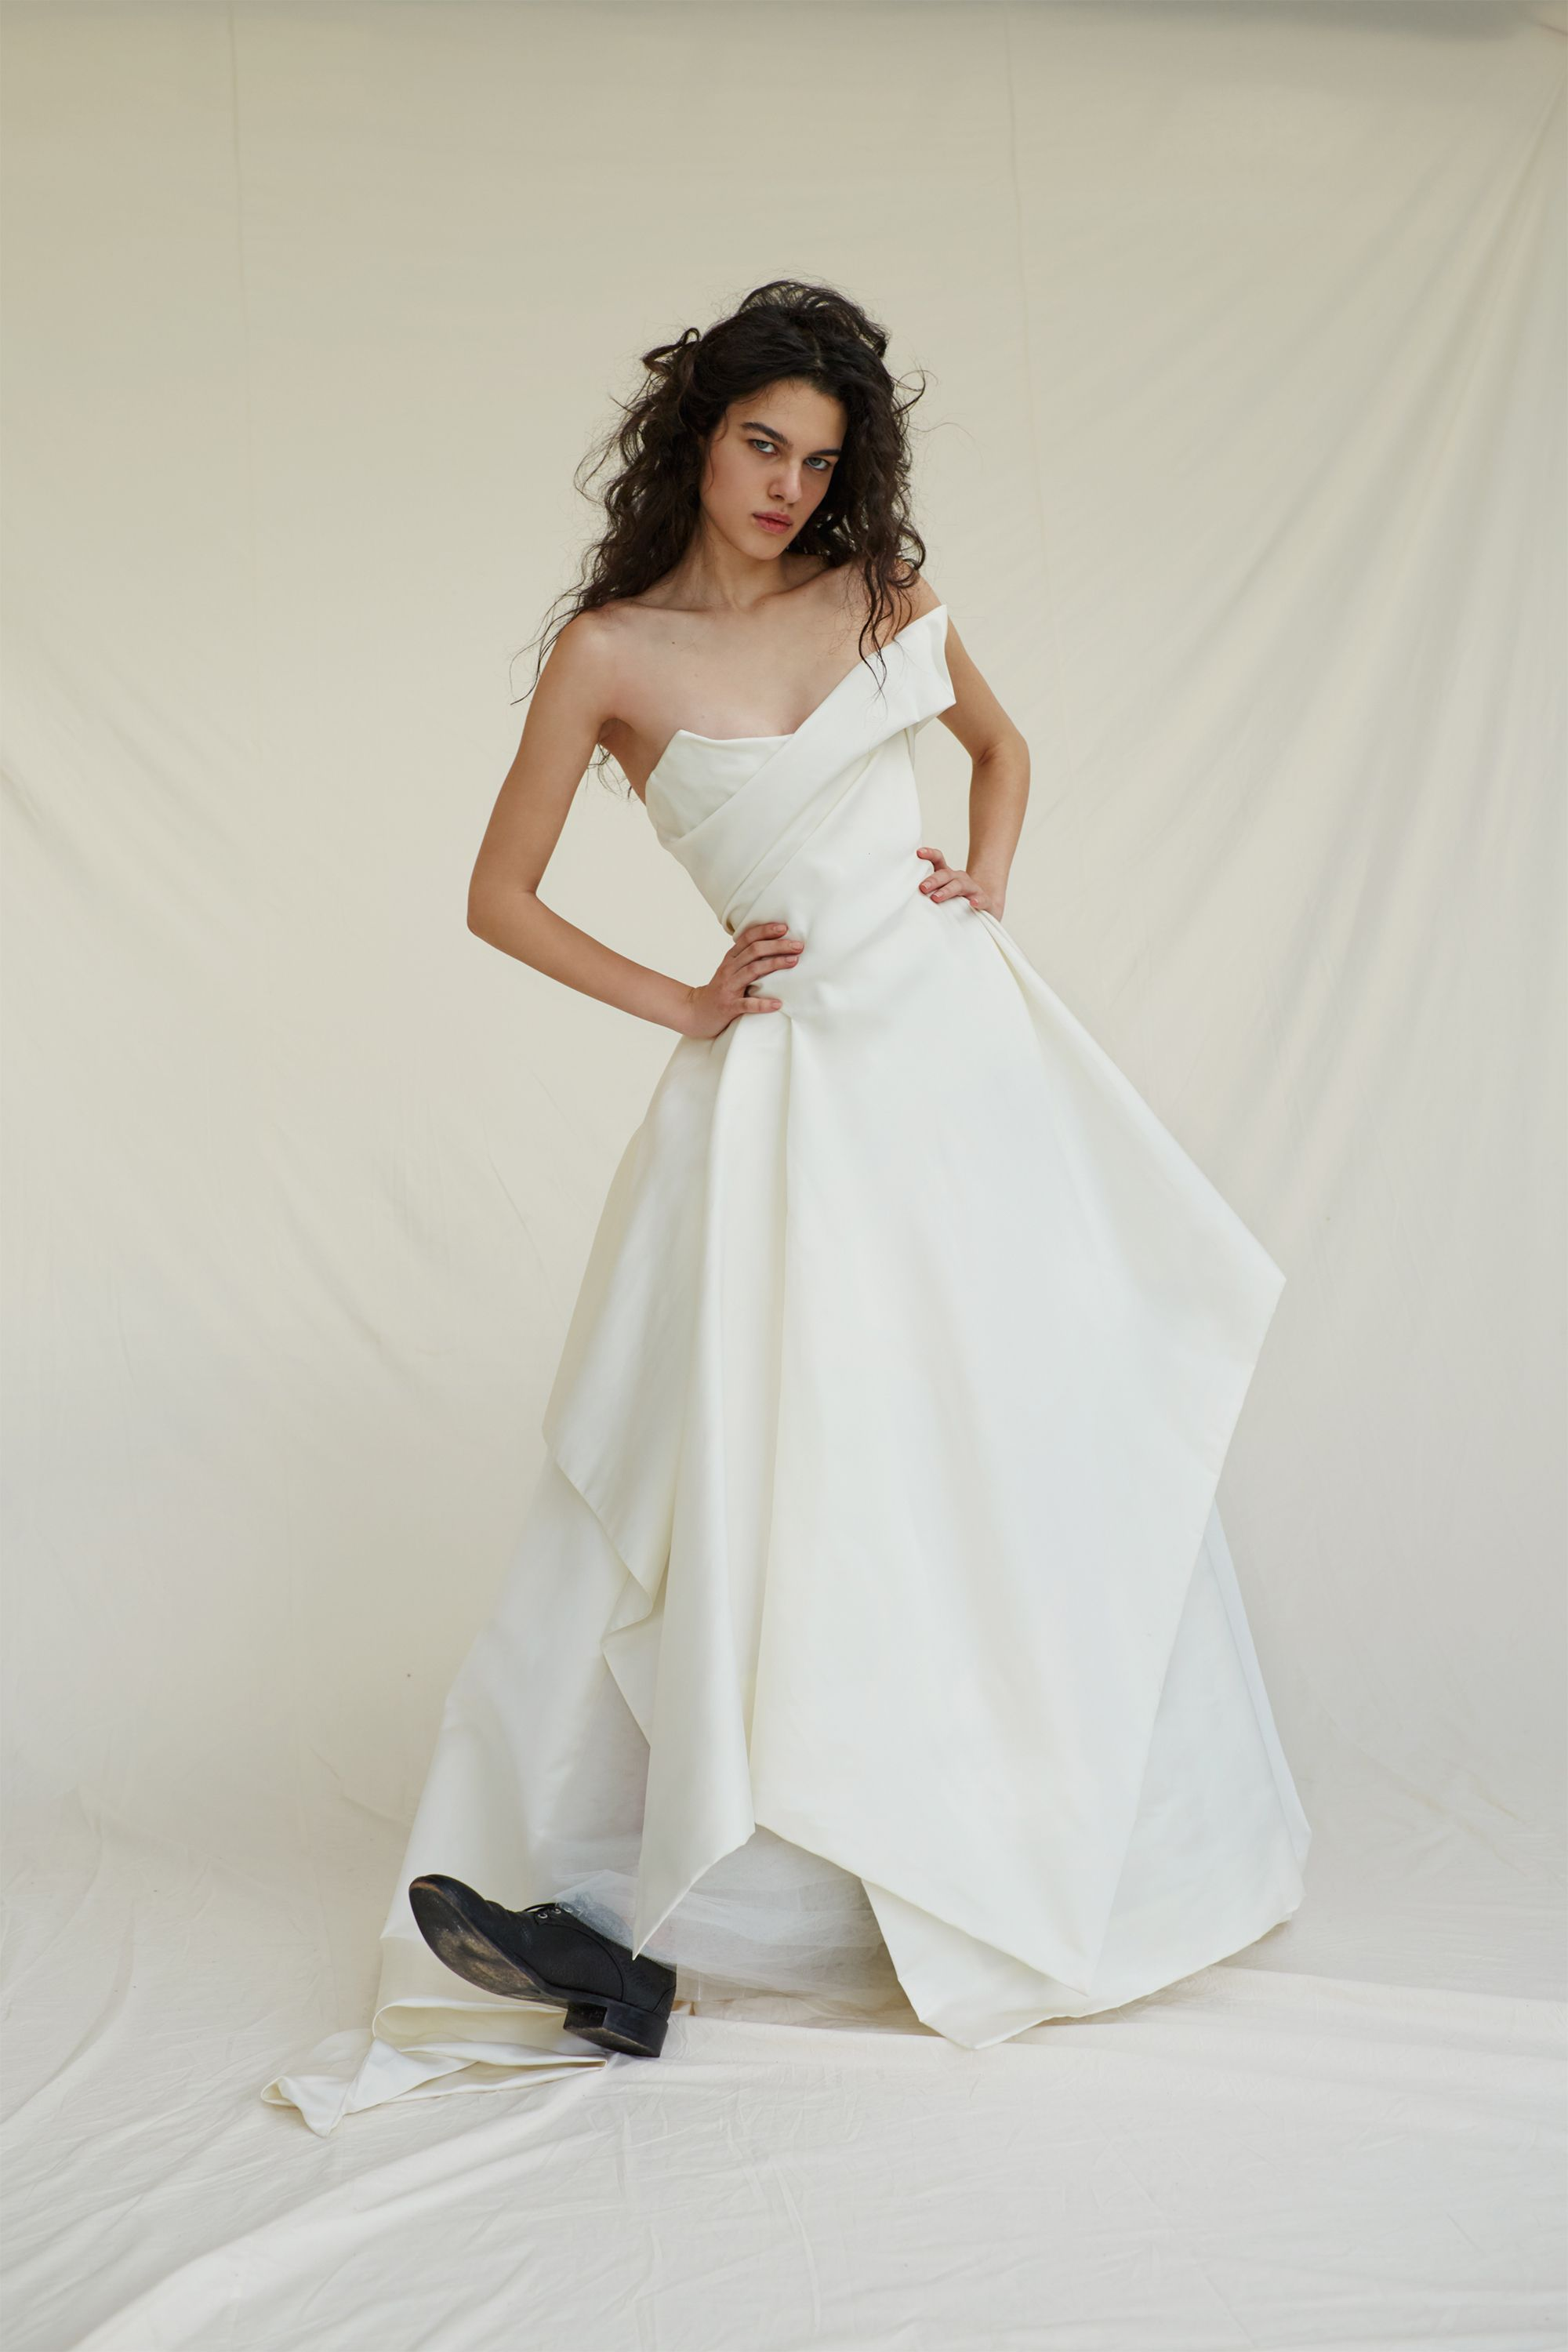 Exclusive Vivienne Westwood Is Bringing Her Bridal Collection To